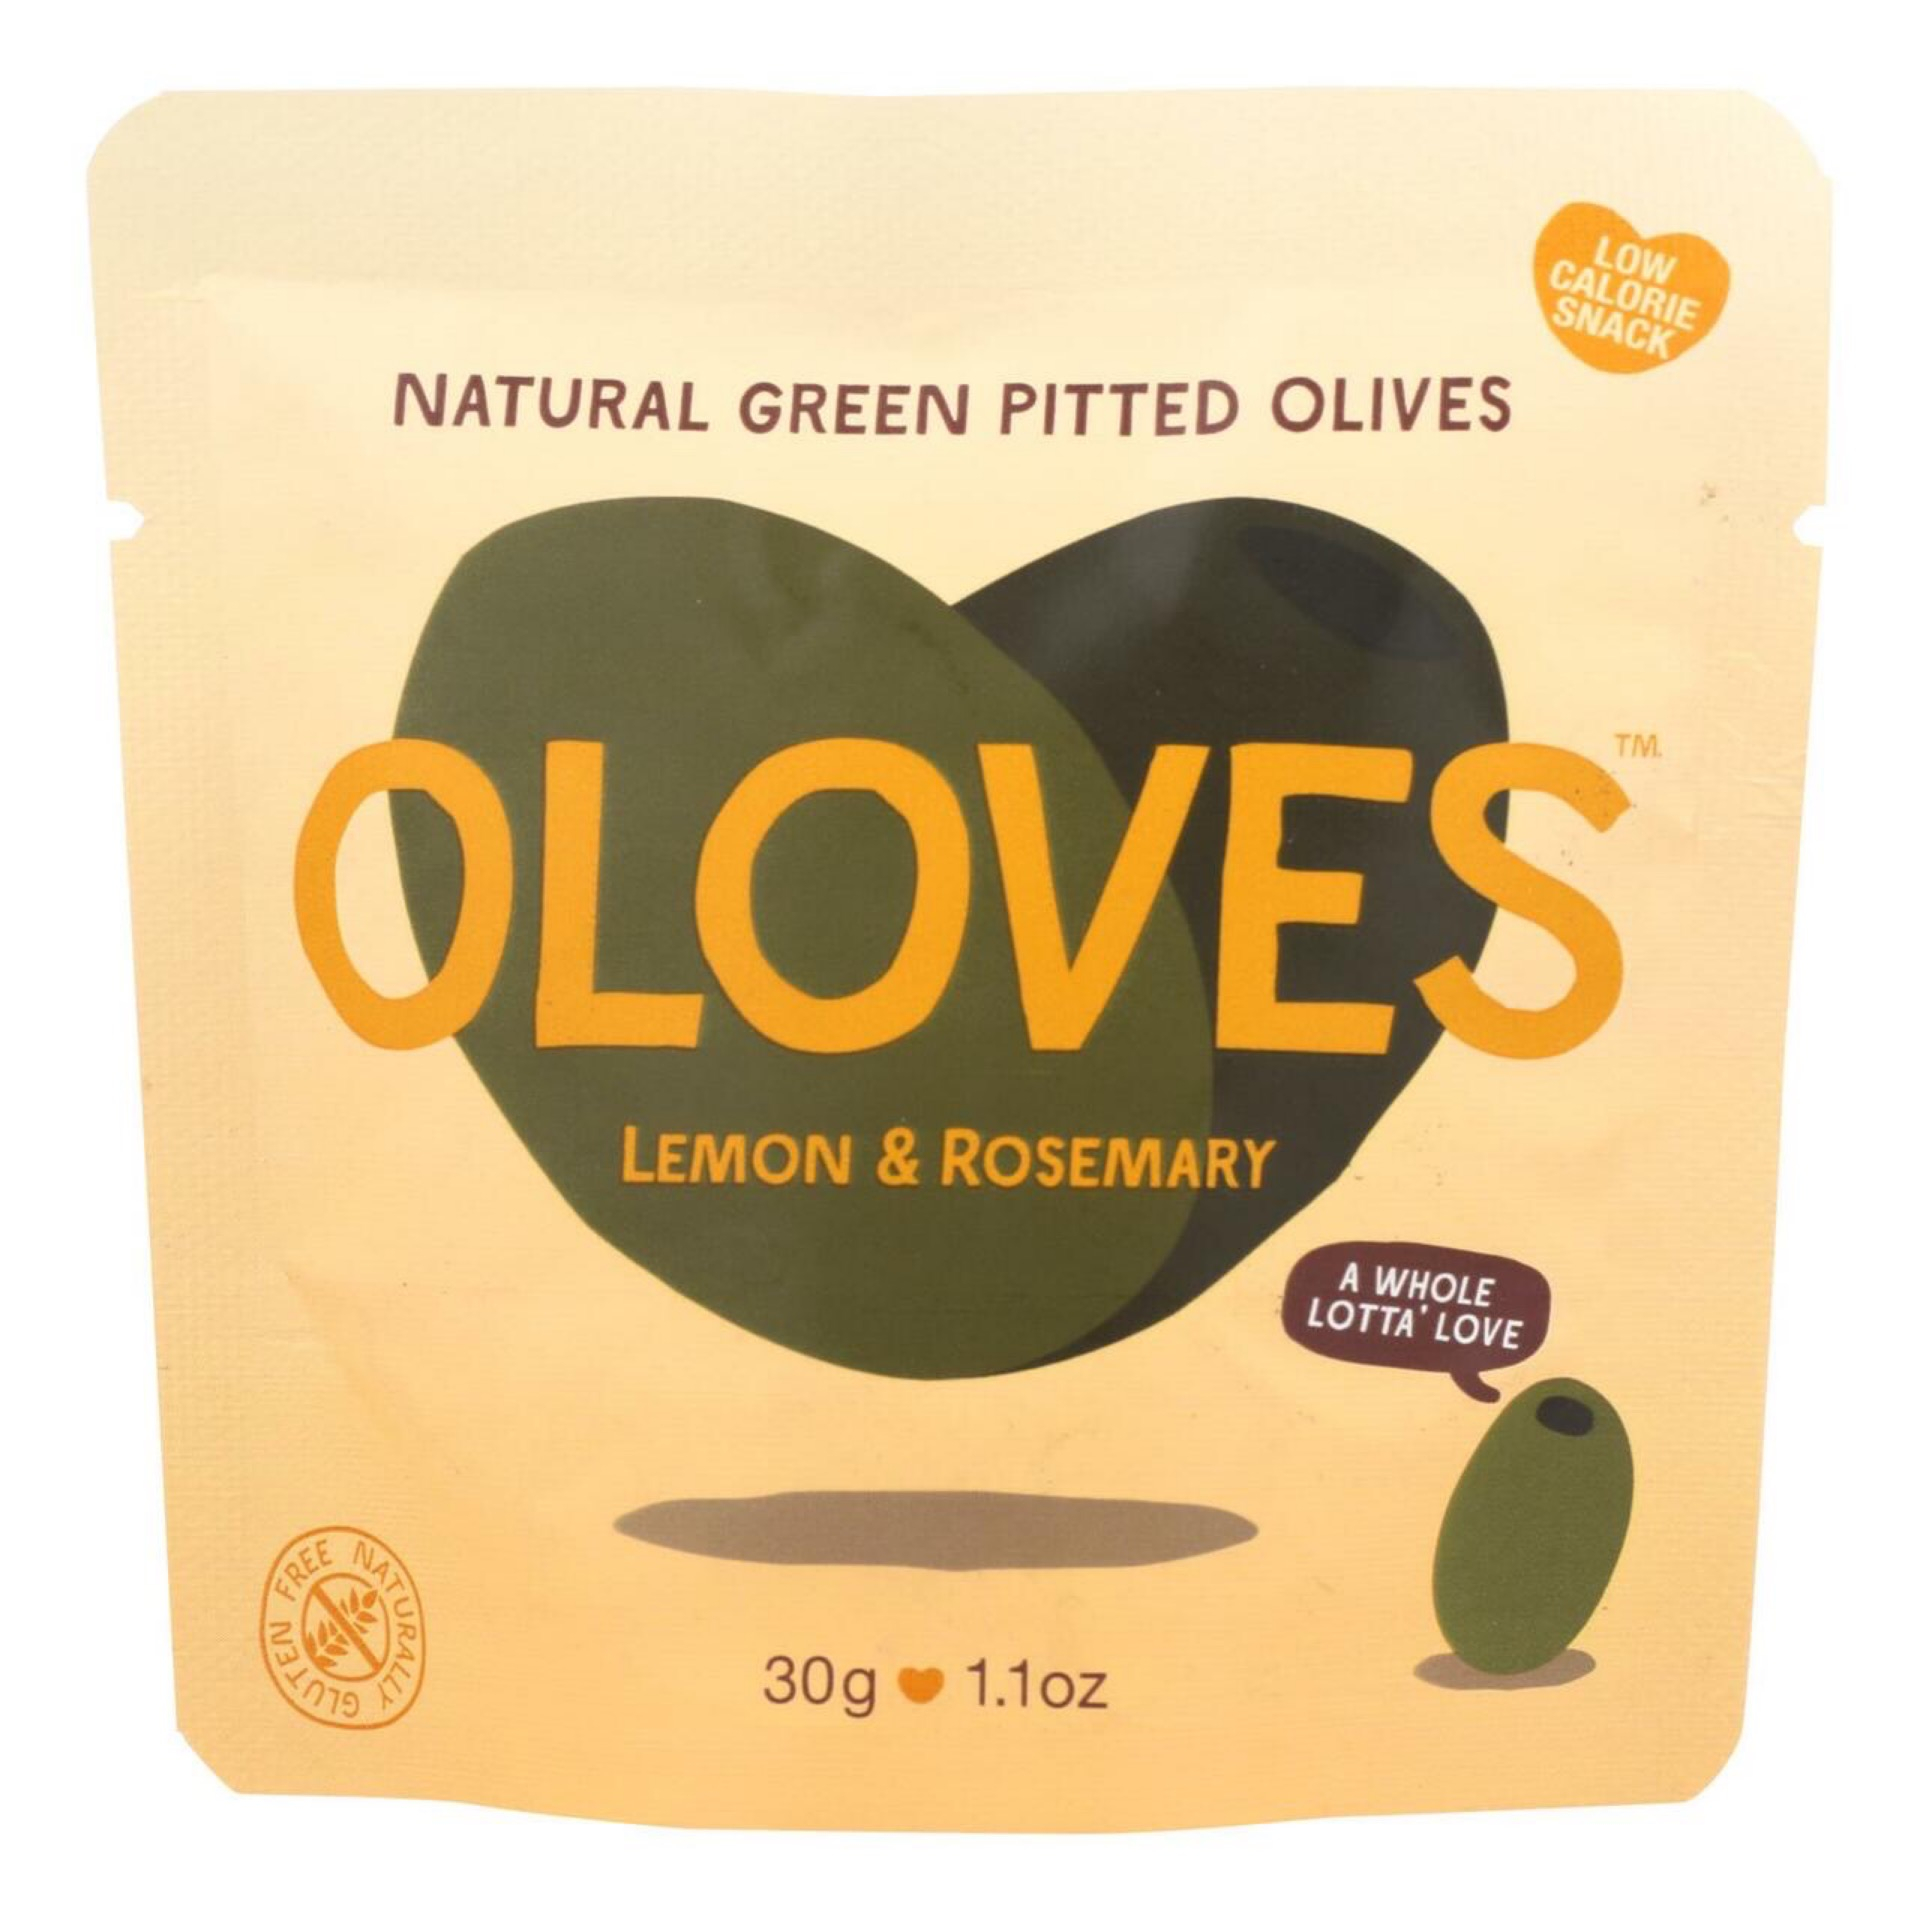 Oloves Green-Pitted Lemon and Rosemary Olives 1.1 oz